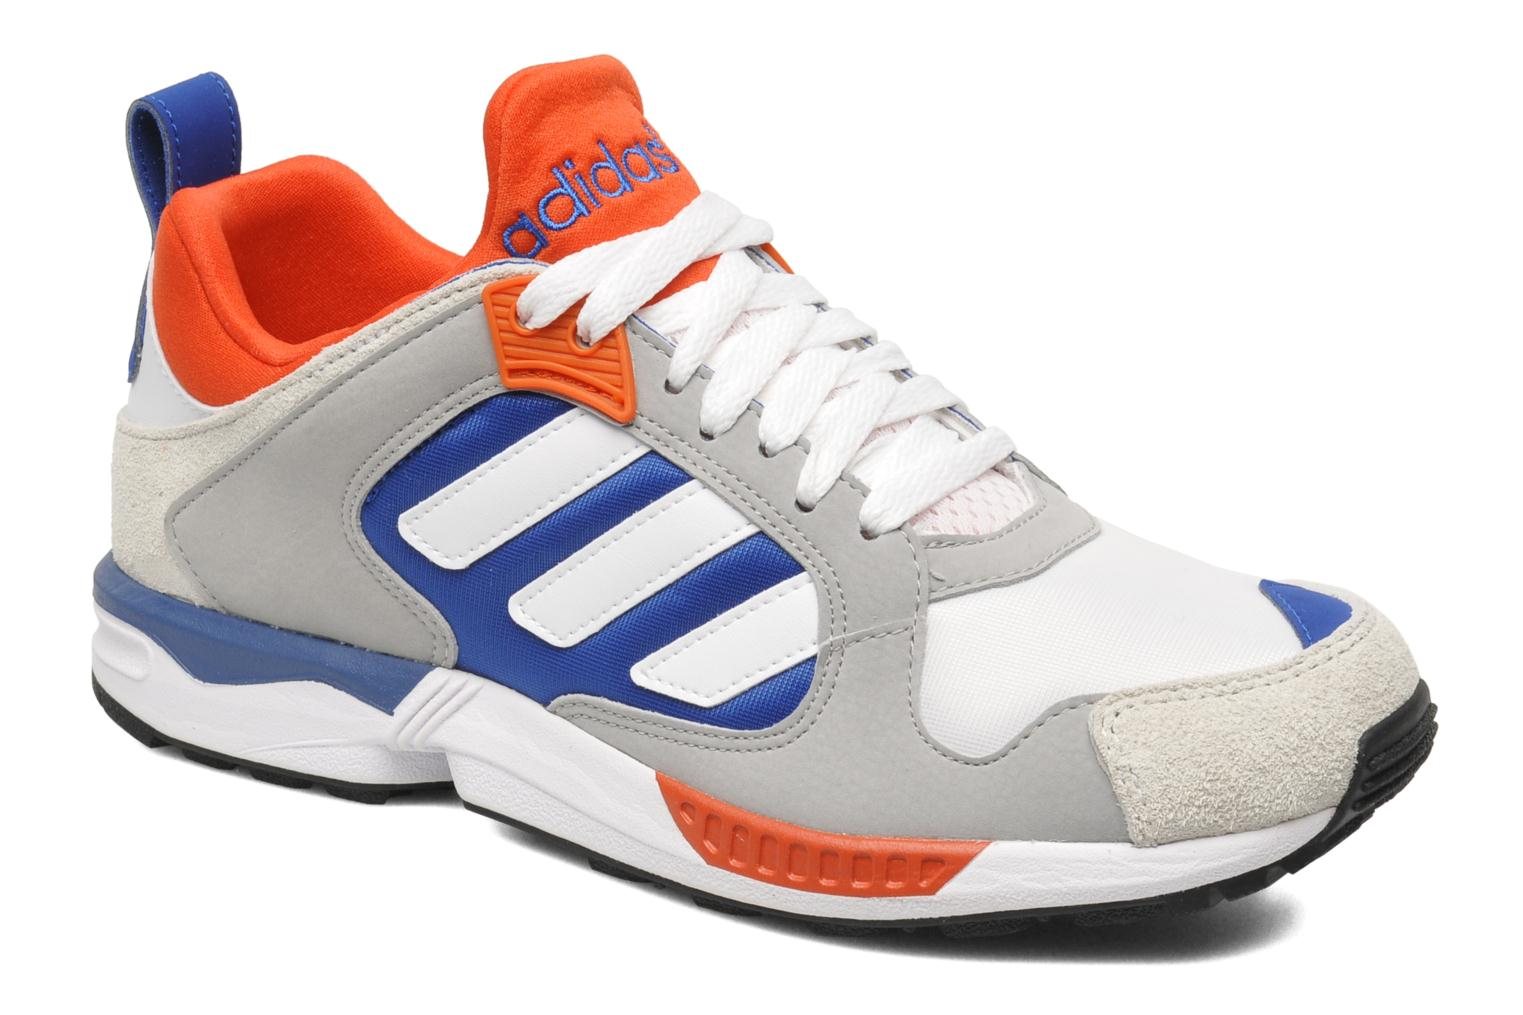 check out 02281 8fb49 Adidas Originals Zx 5000 Rspn (Multicolor) - Trainers chez ...